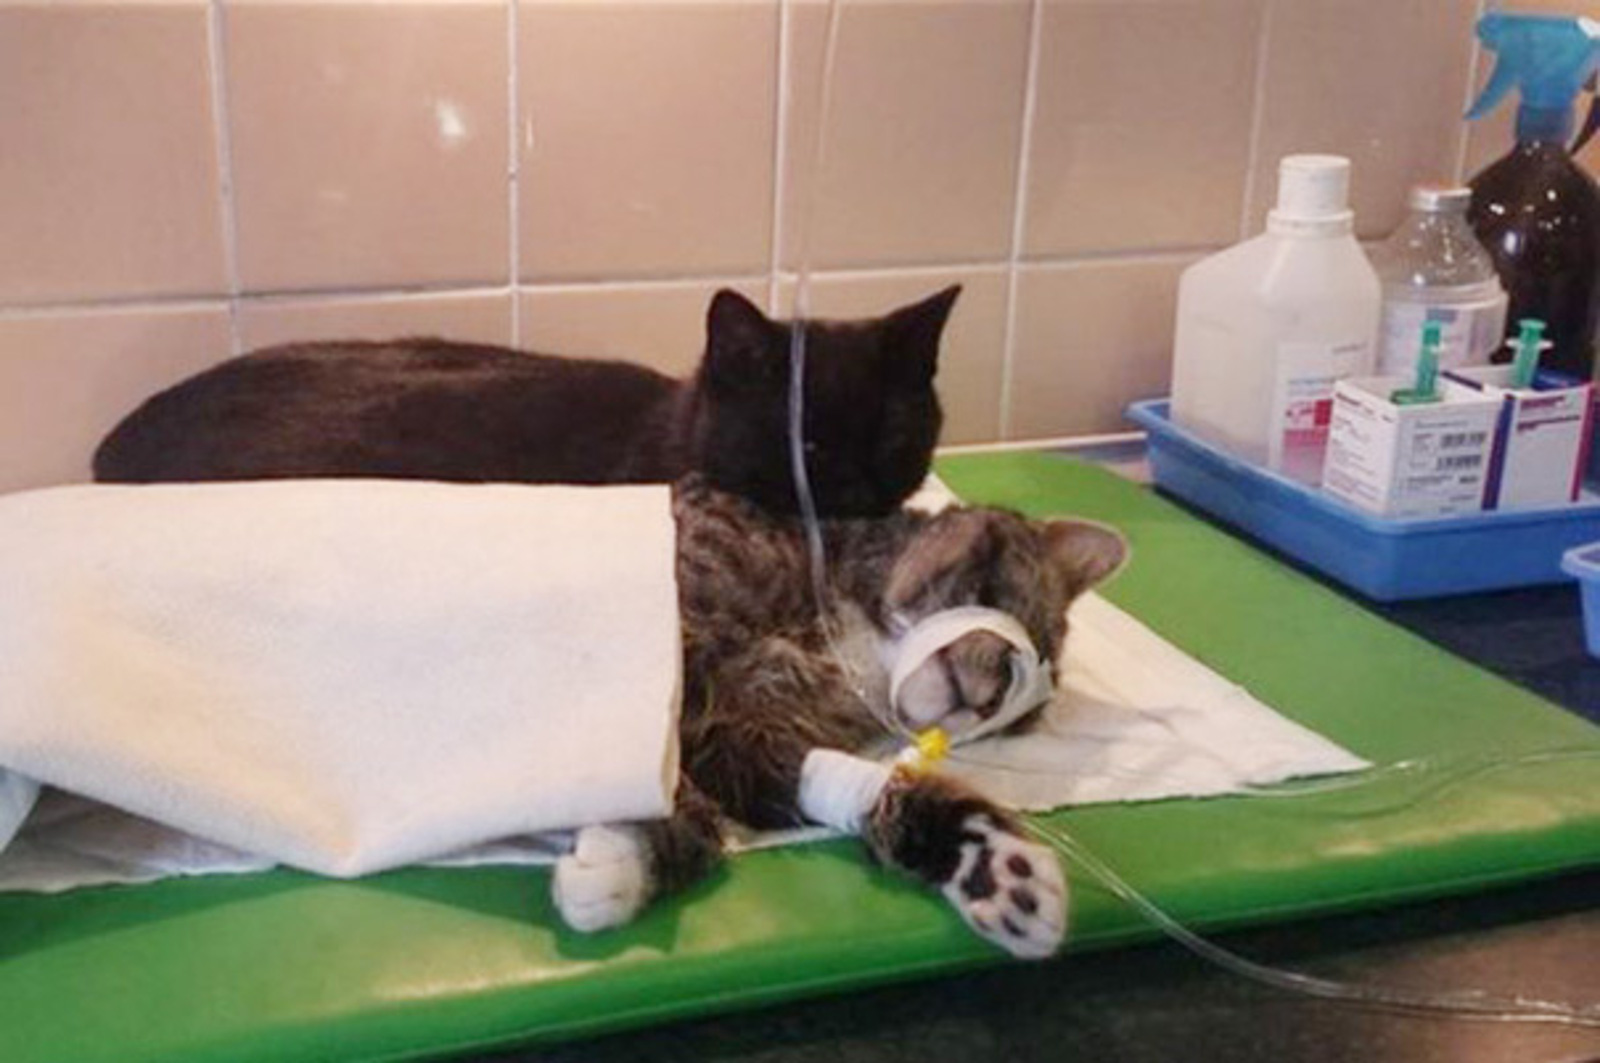 Amazing Nurse Cat Comforts Other Sick Animals in Polish Animal Shelter (PHOTOS)